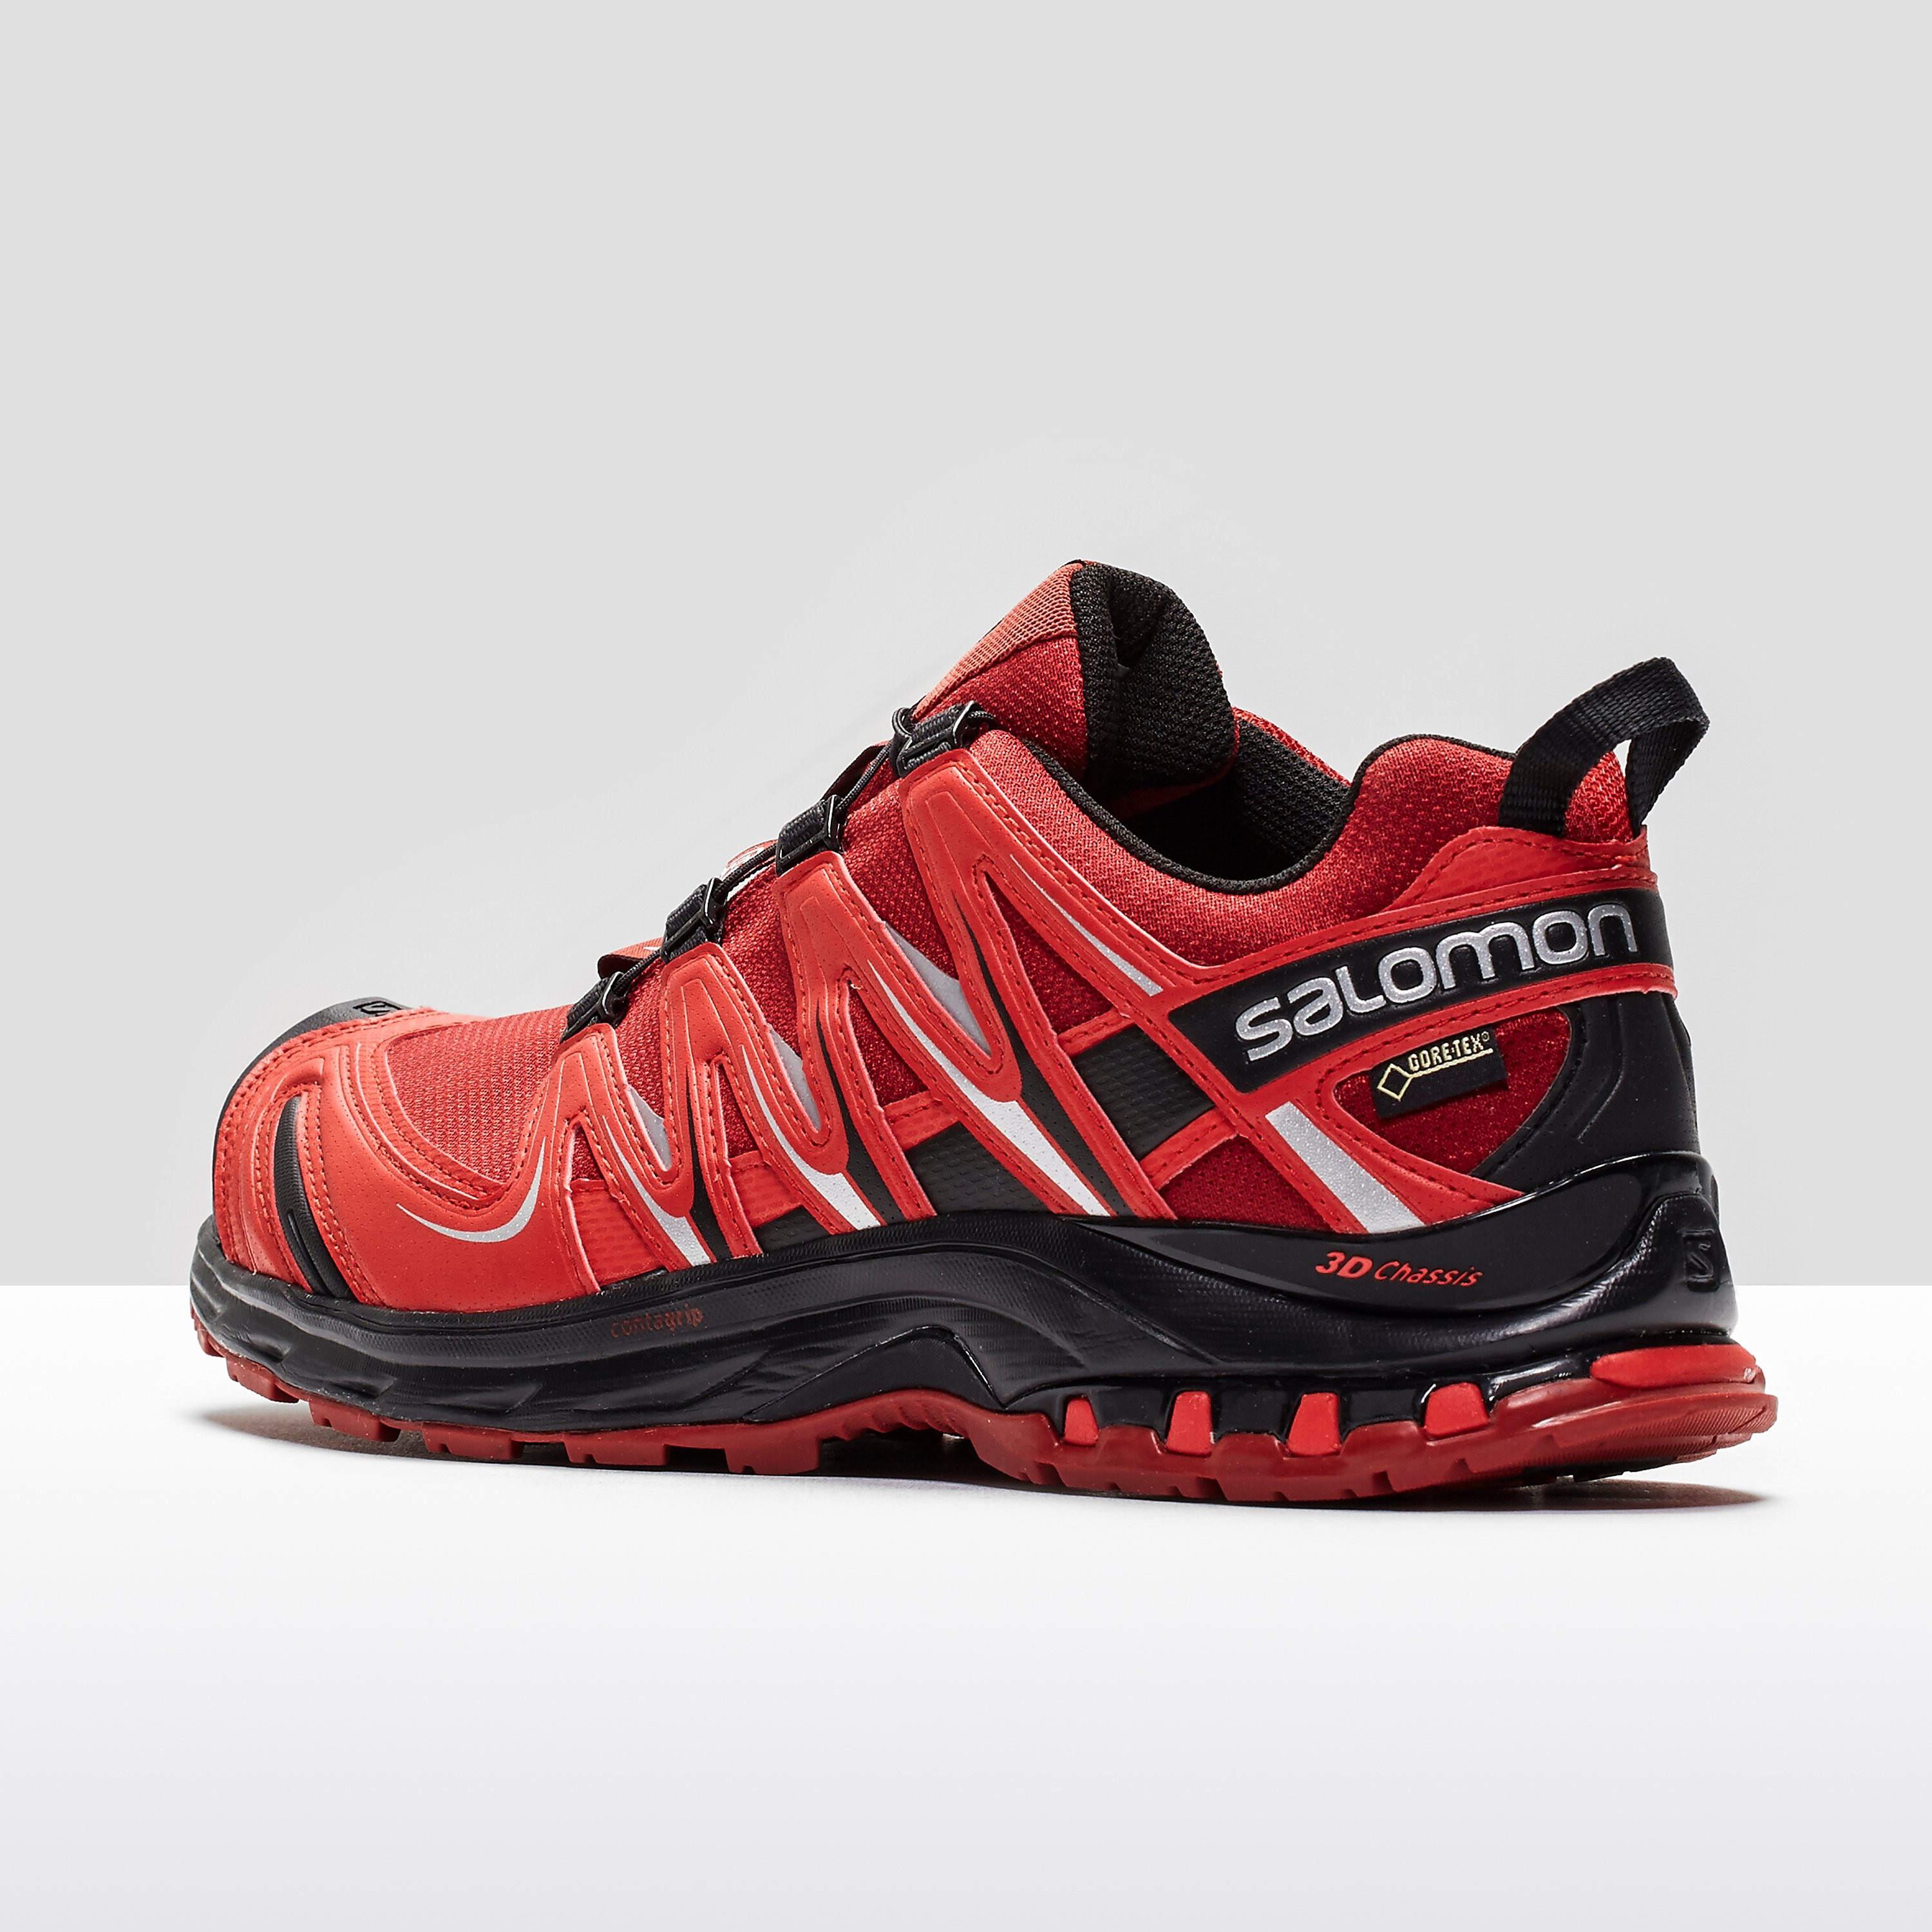 Salomon XA Pro 3D GTX Men's Trail Running Shoes